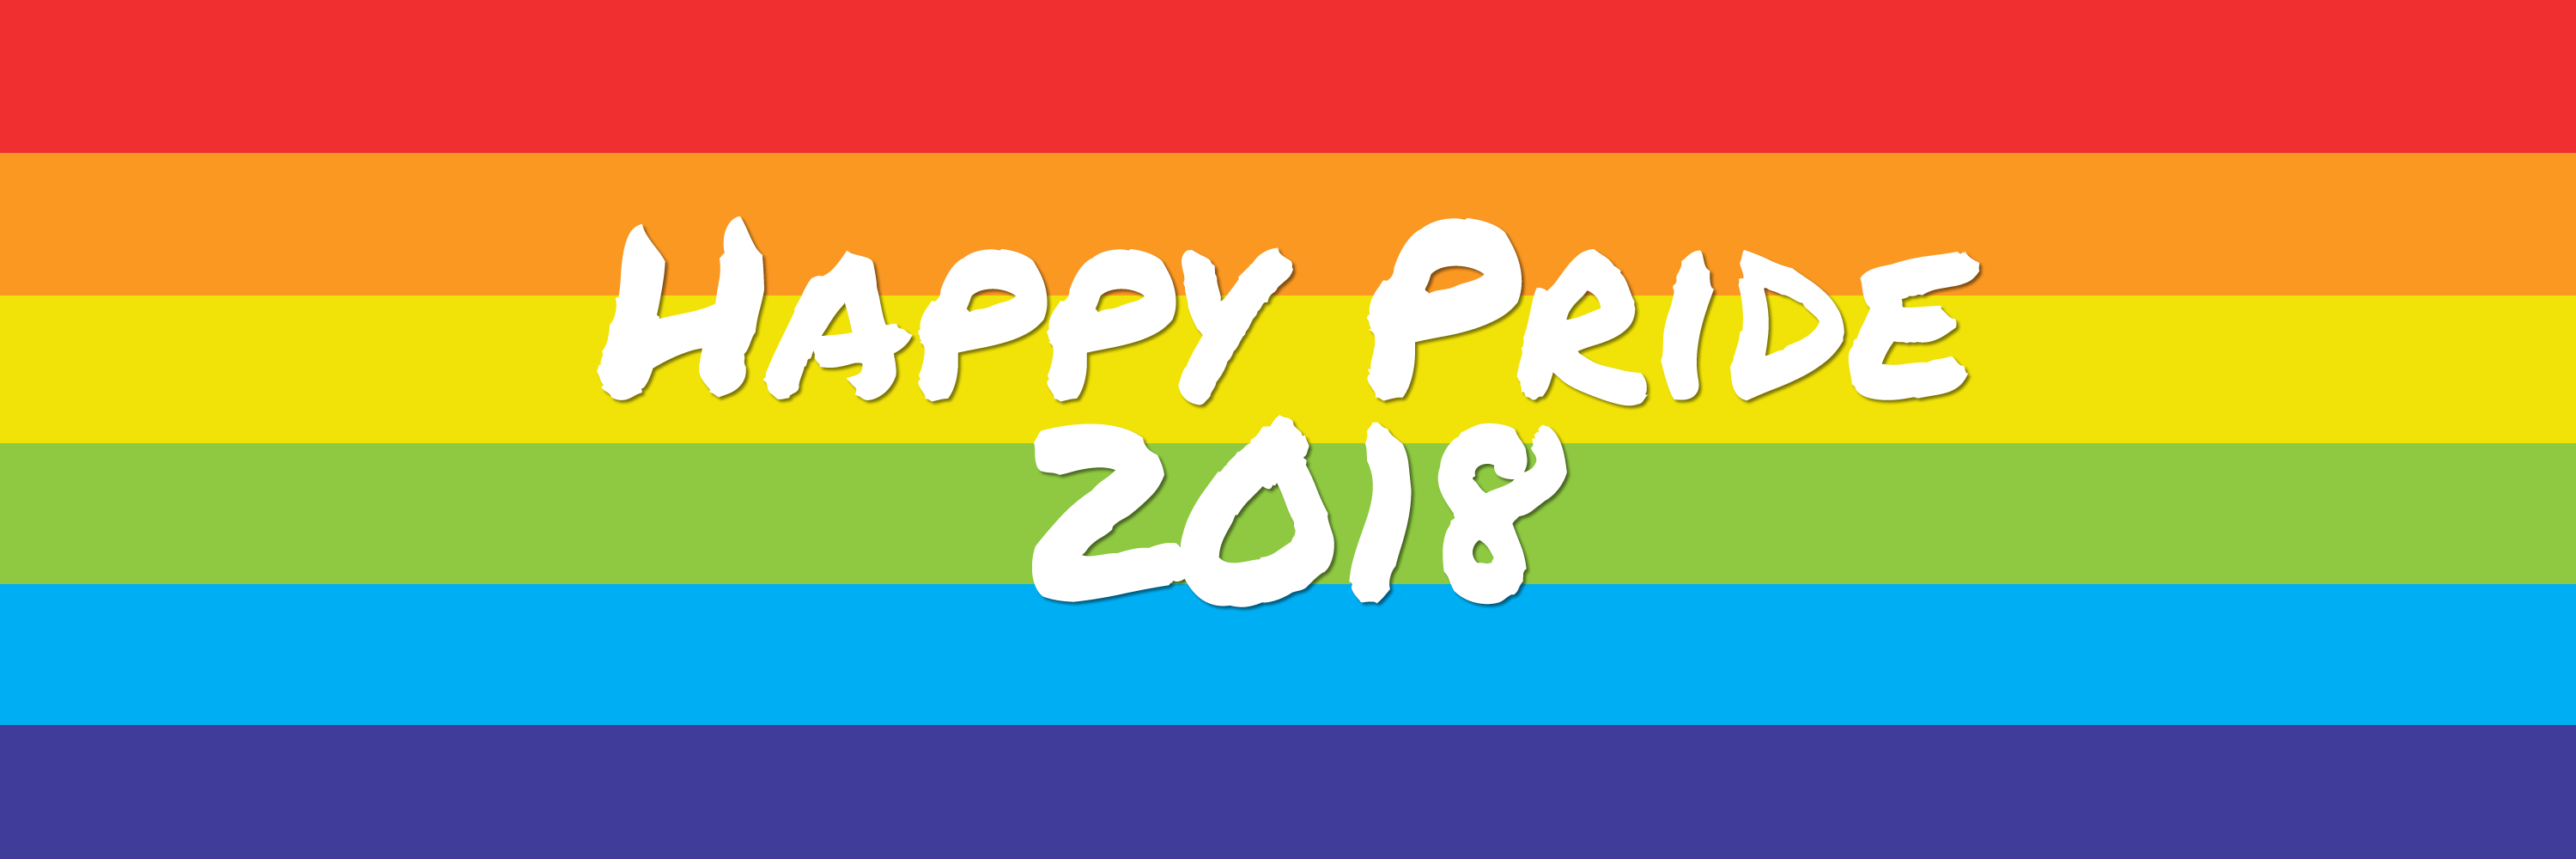 Happy Pride 2018 Twitter Background